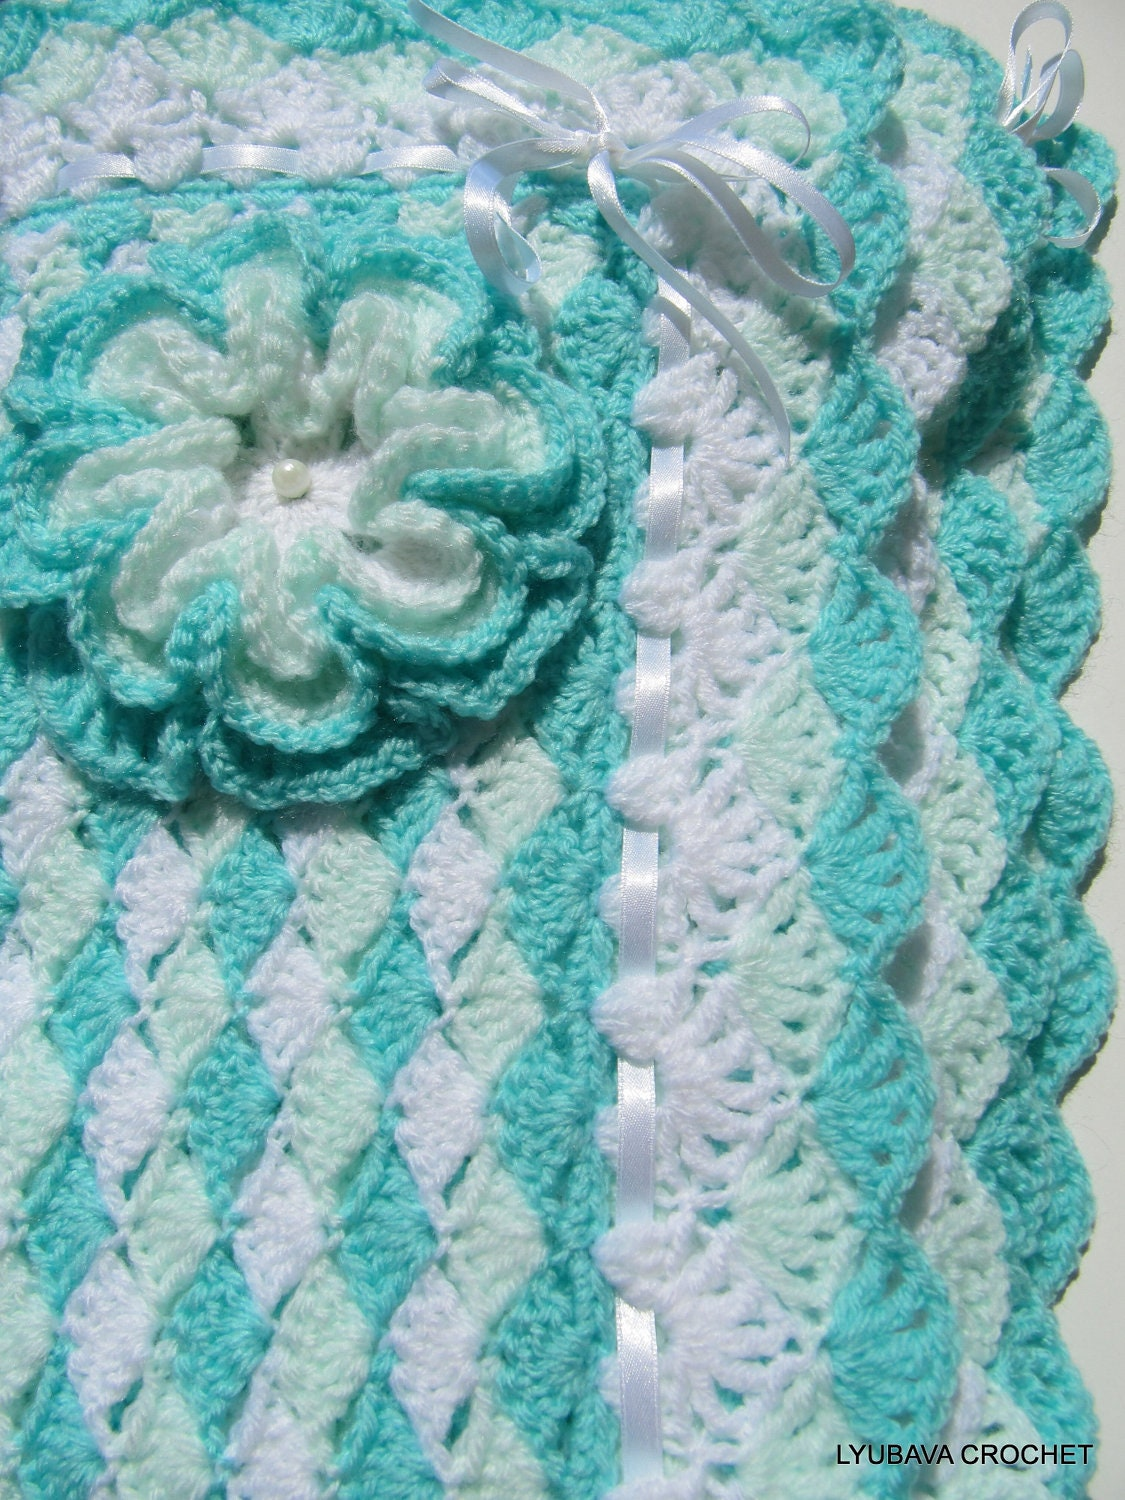 Crocheting A Baby Quilt : CROCHET PATTERN Baby Blanket Turquoise With by LyubavaCrochet